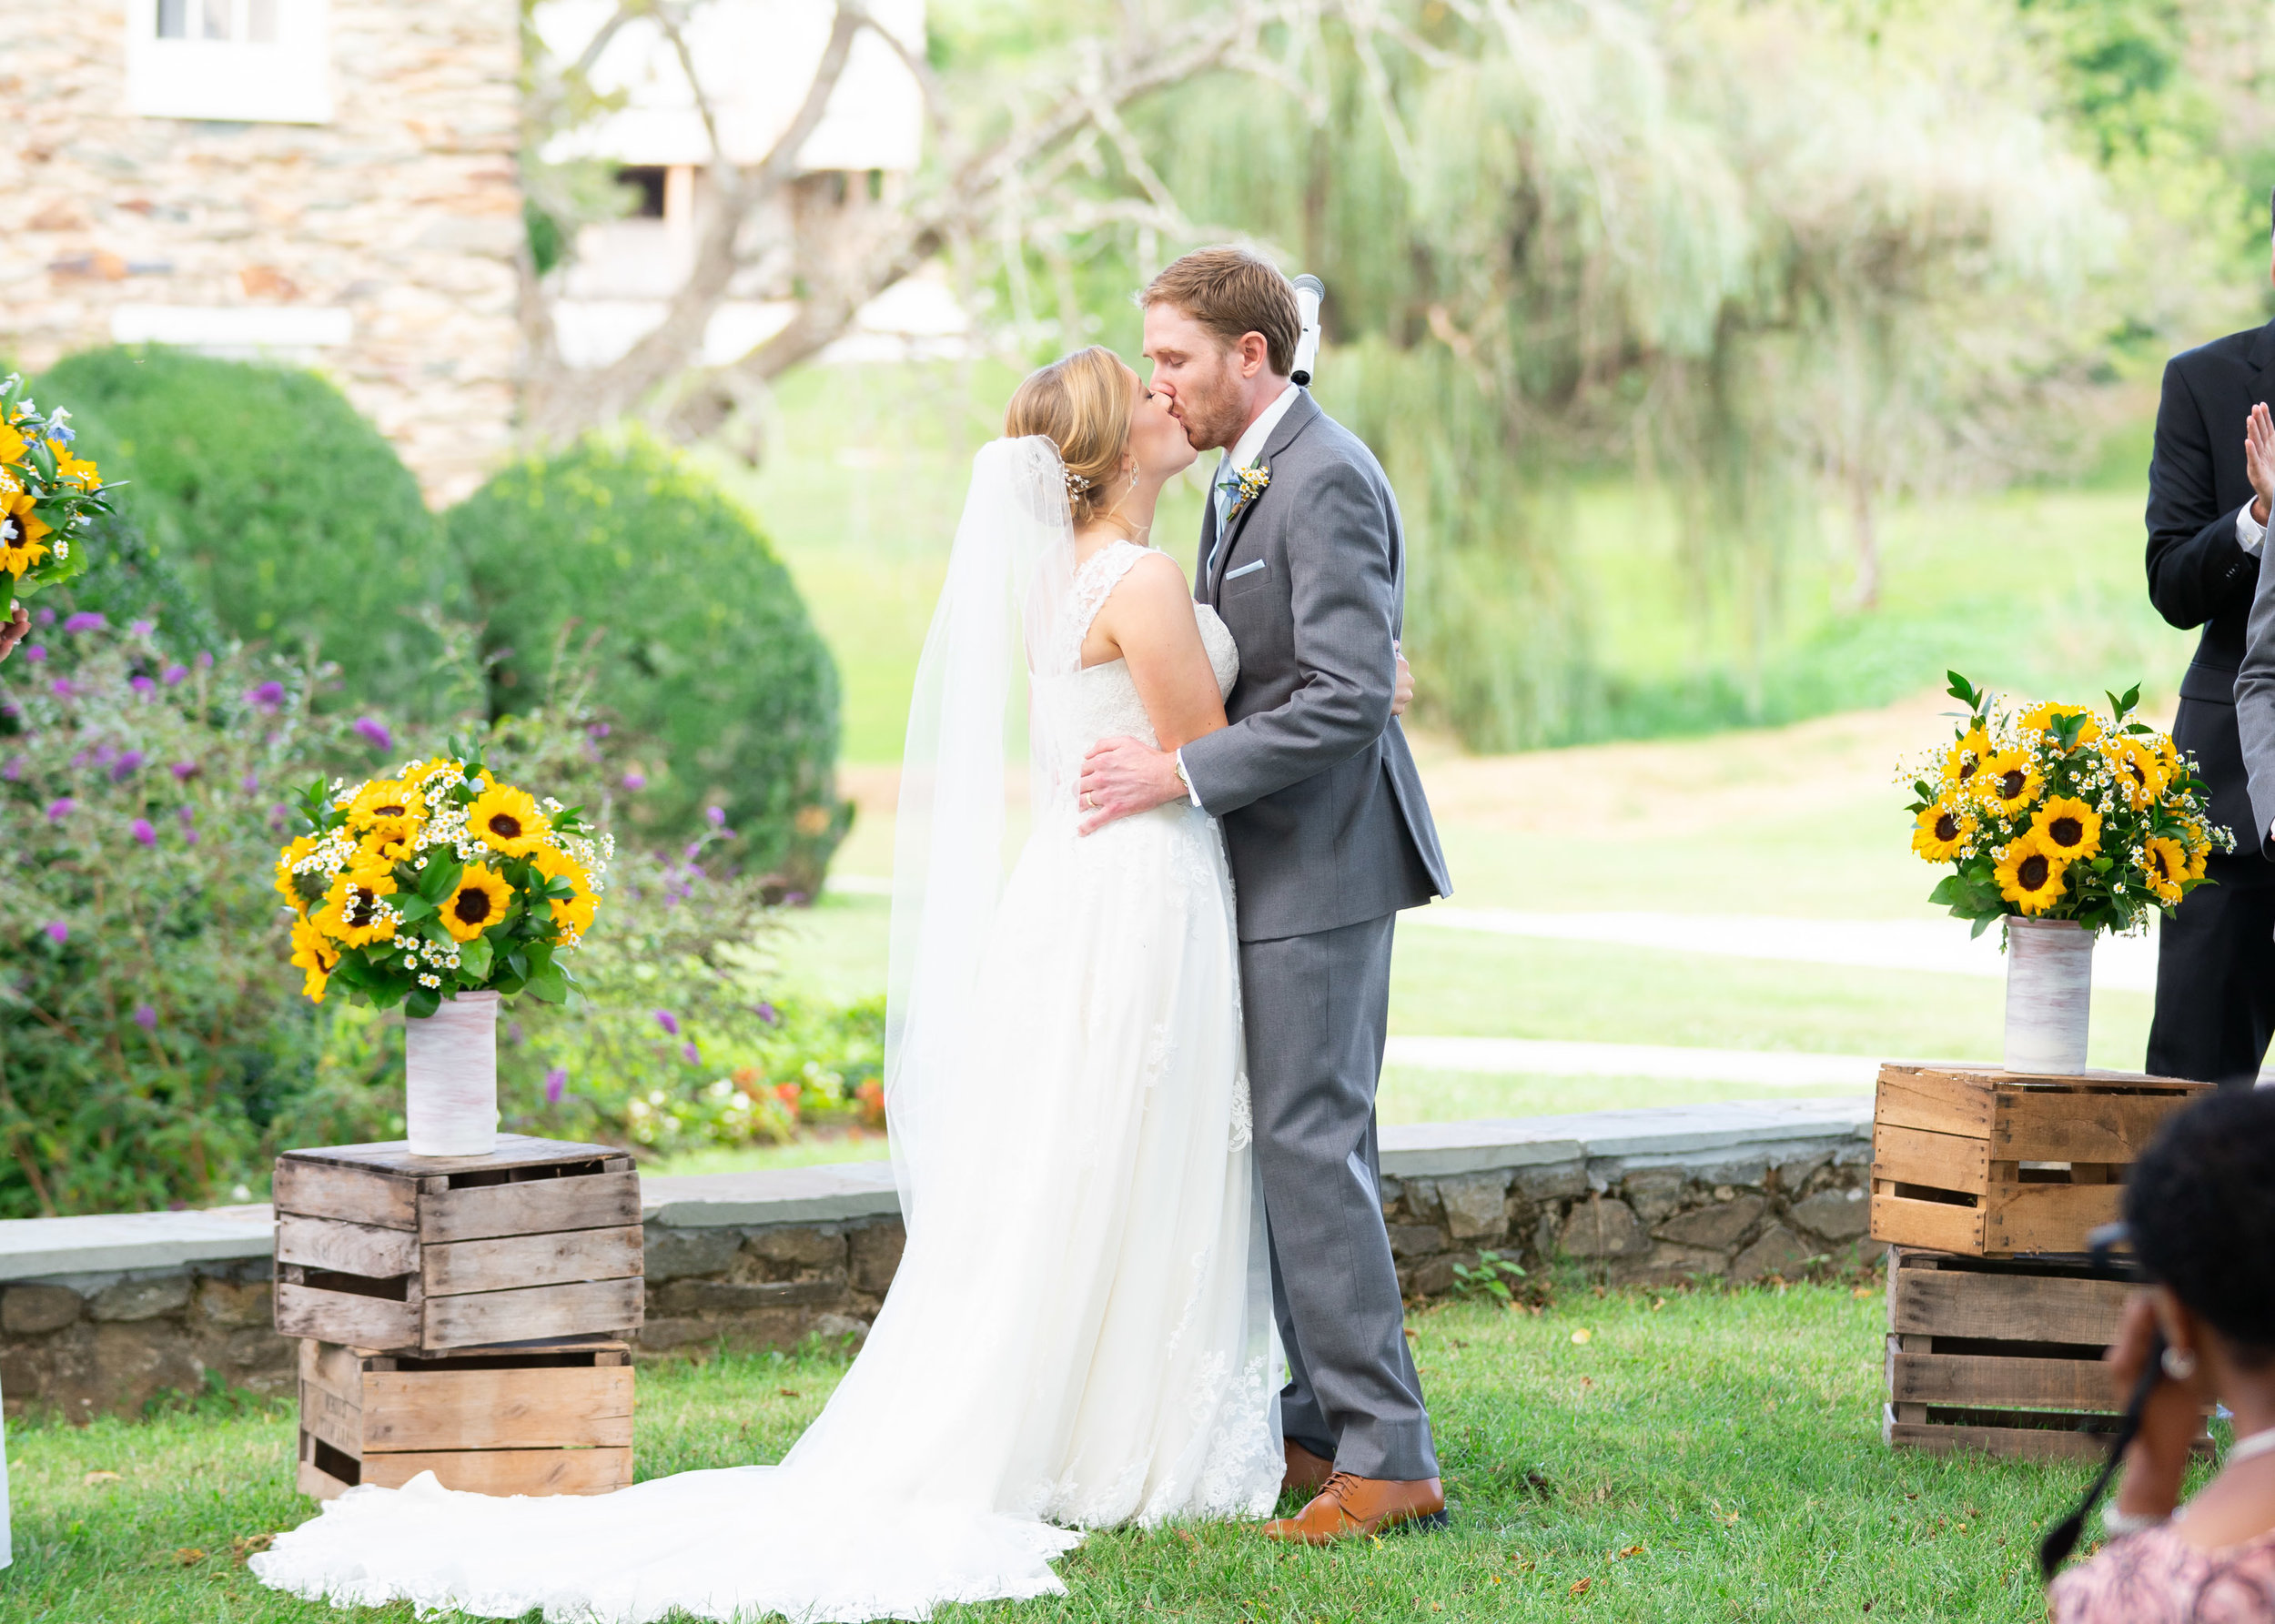 Bride and groom kissing during ceremony at Stone Manor Country Club